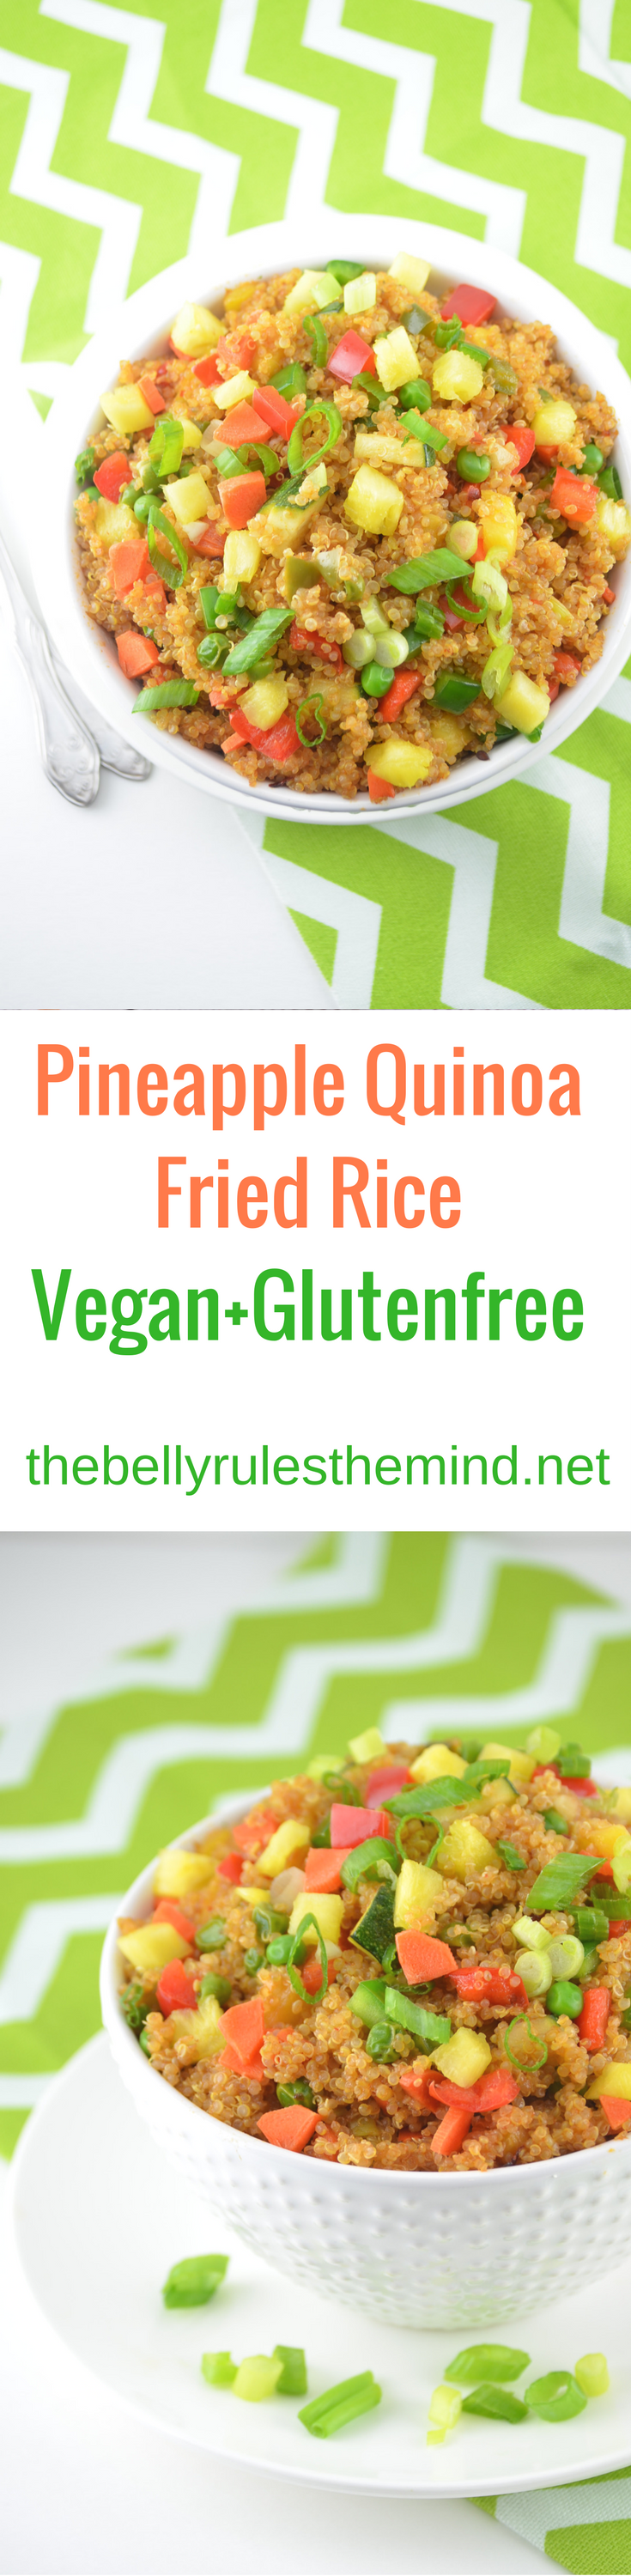 pineapple-quinoa-fried-rice-8